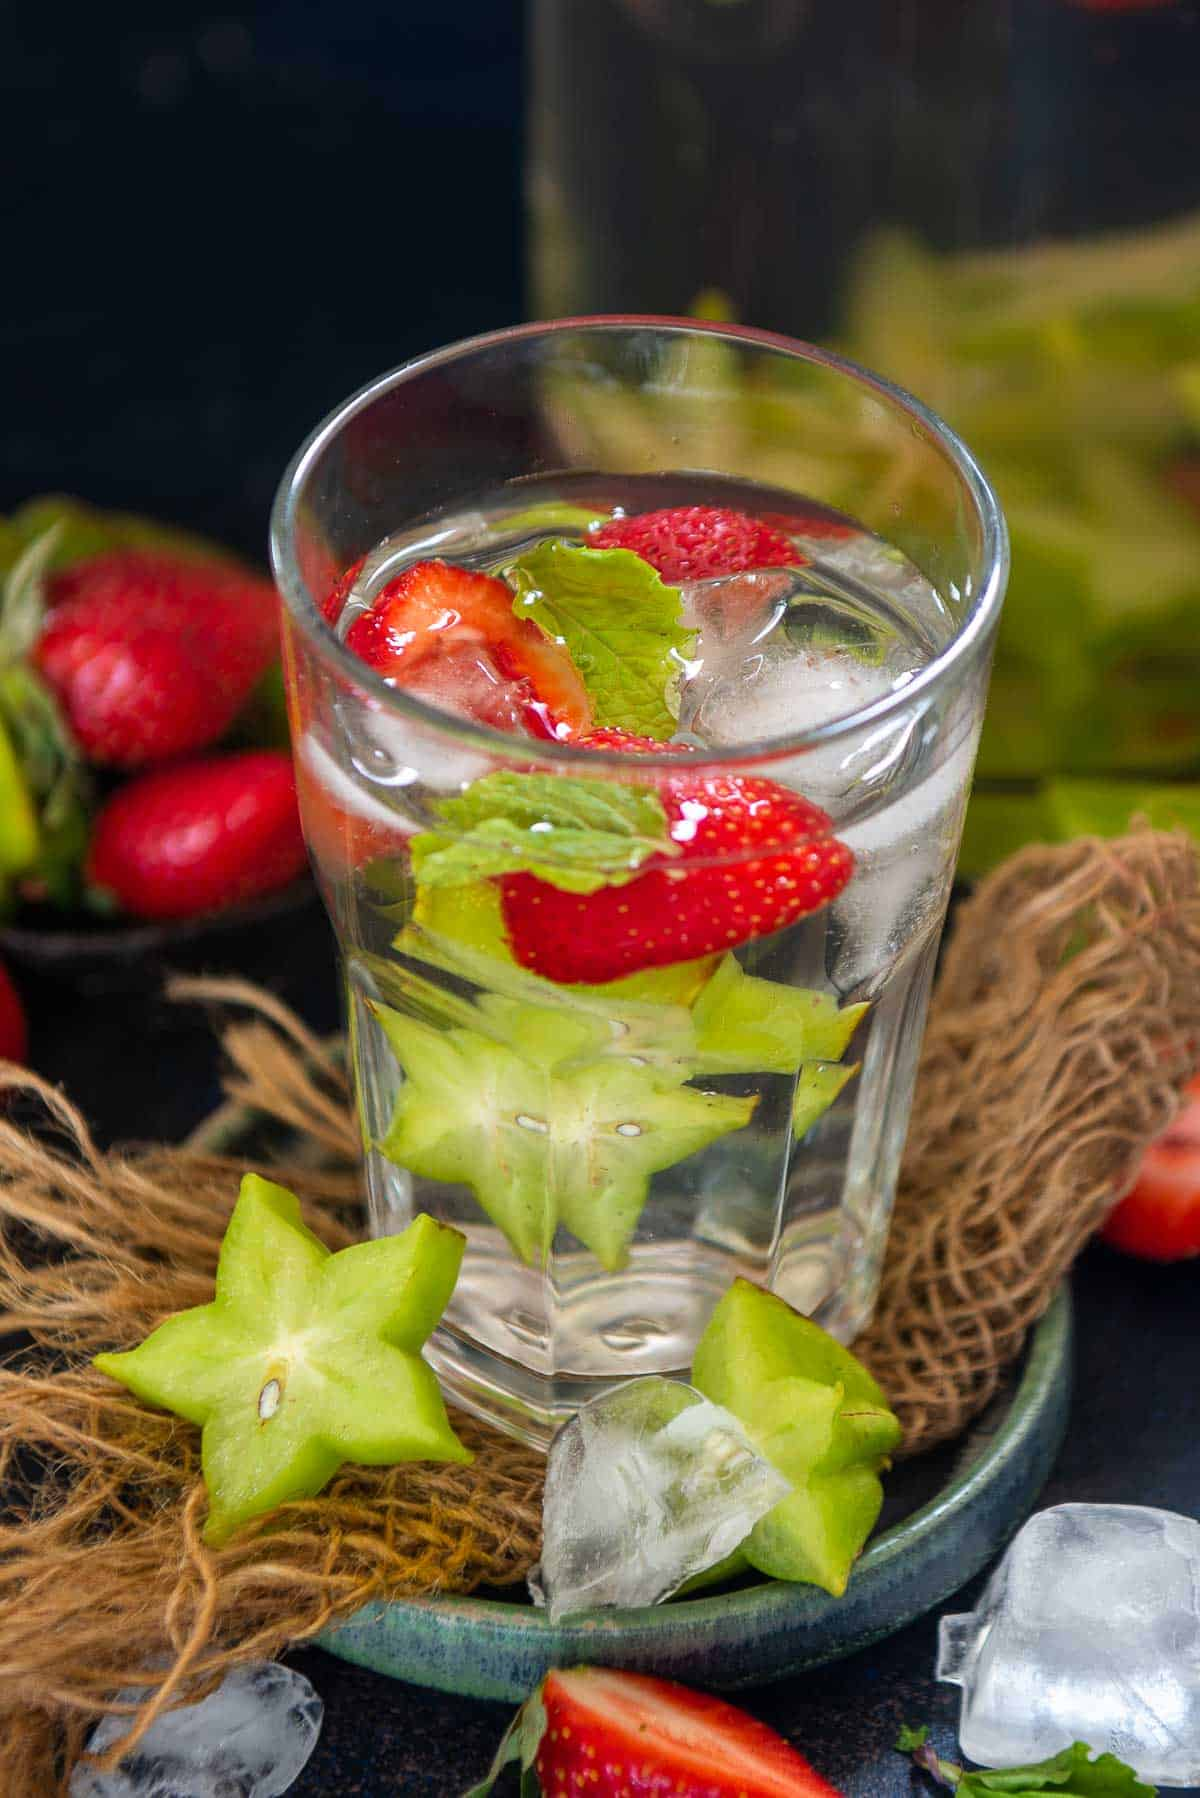 Starfruit detox water served in a glass.